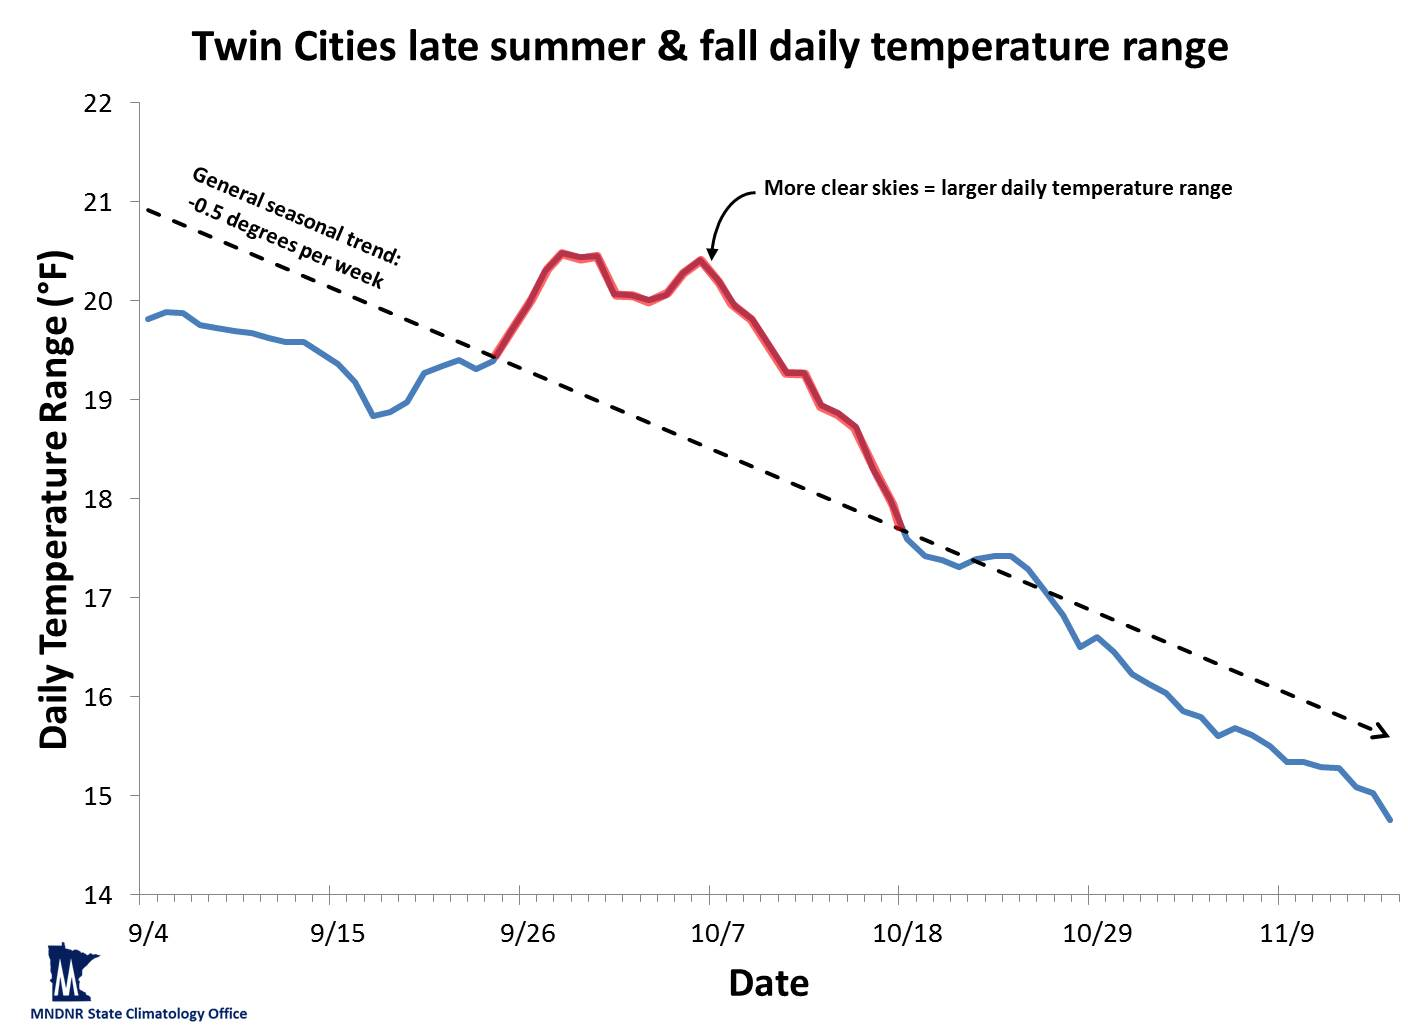 Graph of autumn daily temperature range in Twin Cities